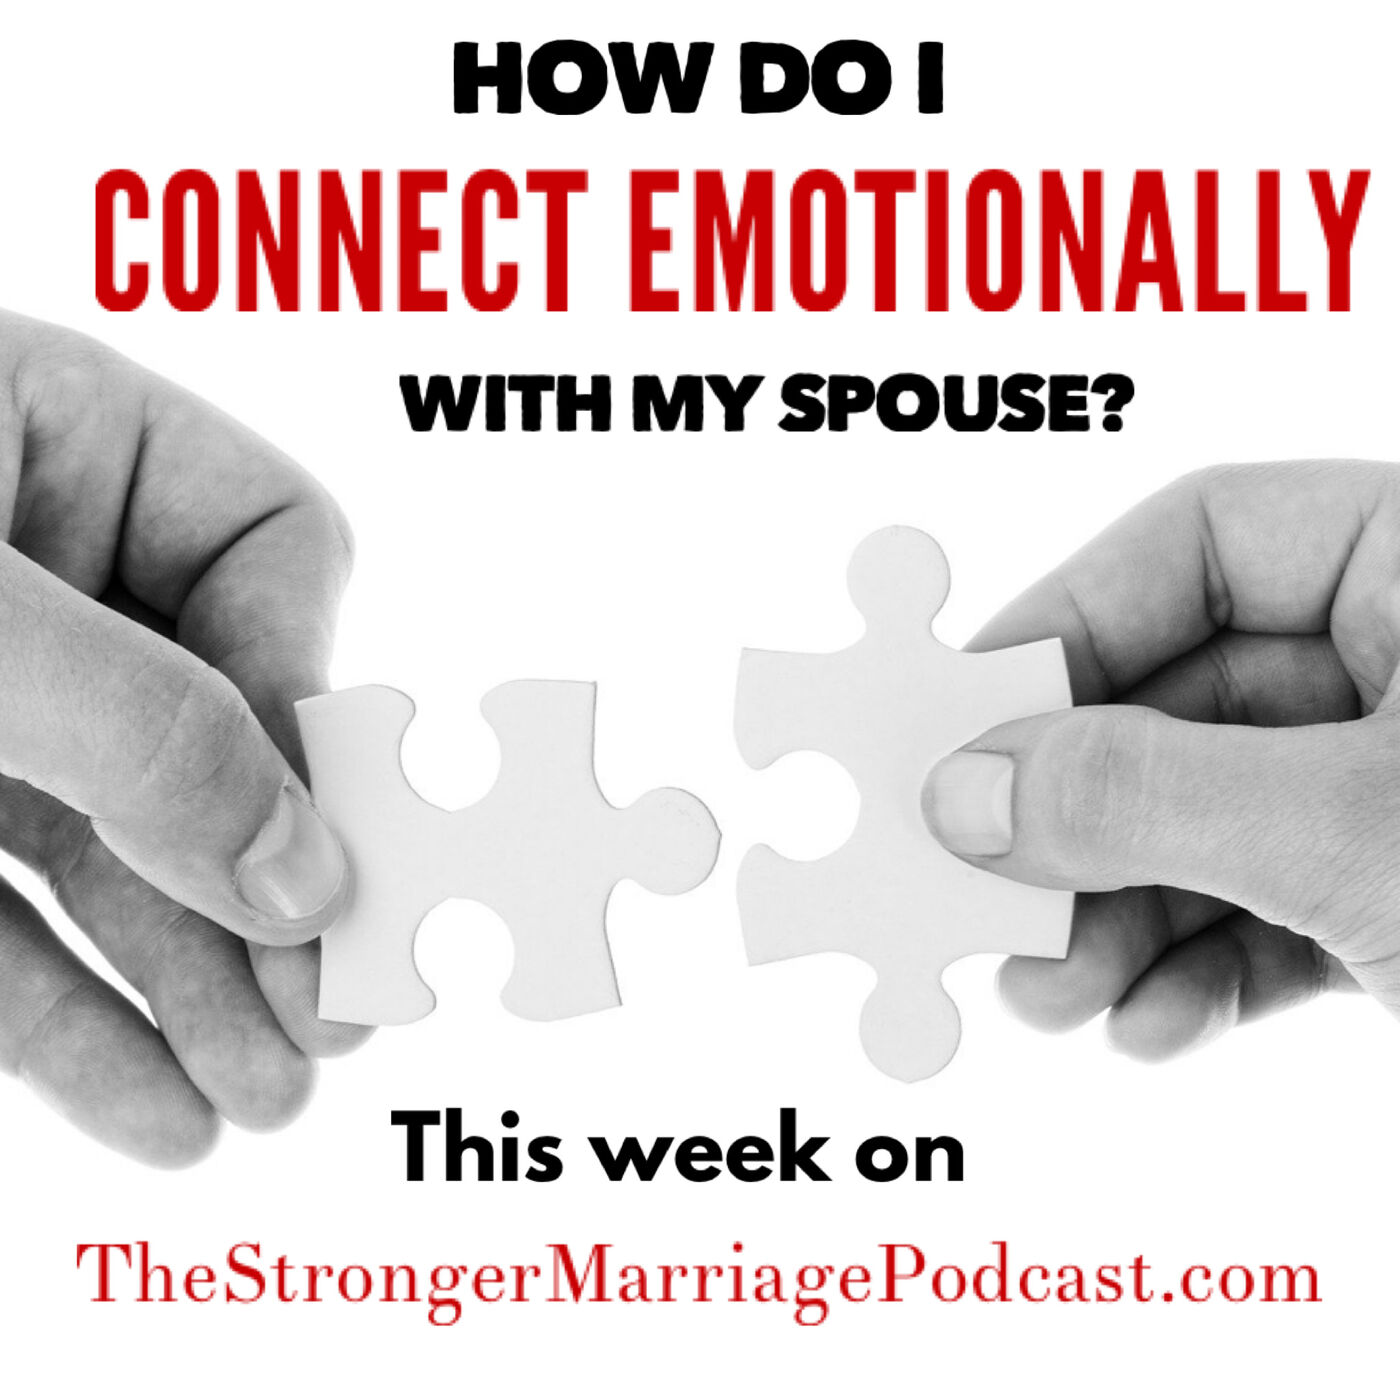 HOW DO I CONNECT EMOTIONALLY WITH MY SPOUSE?